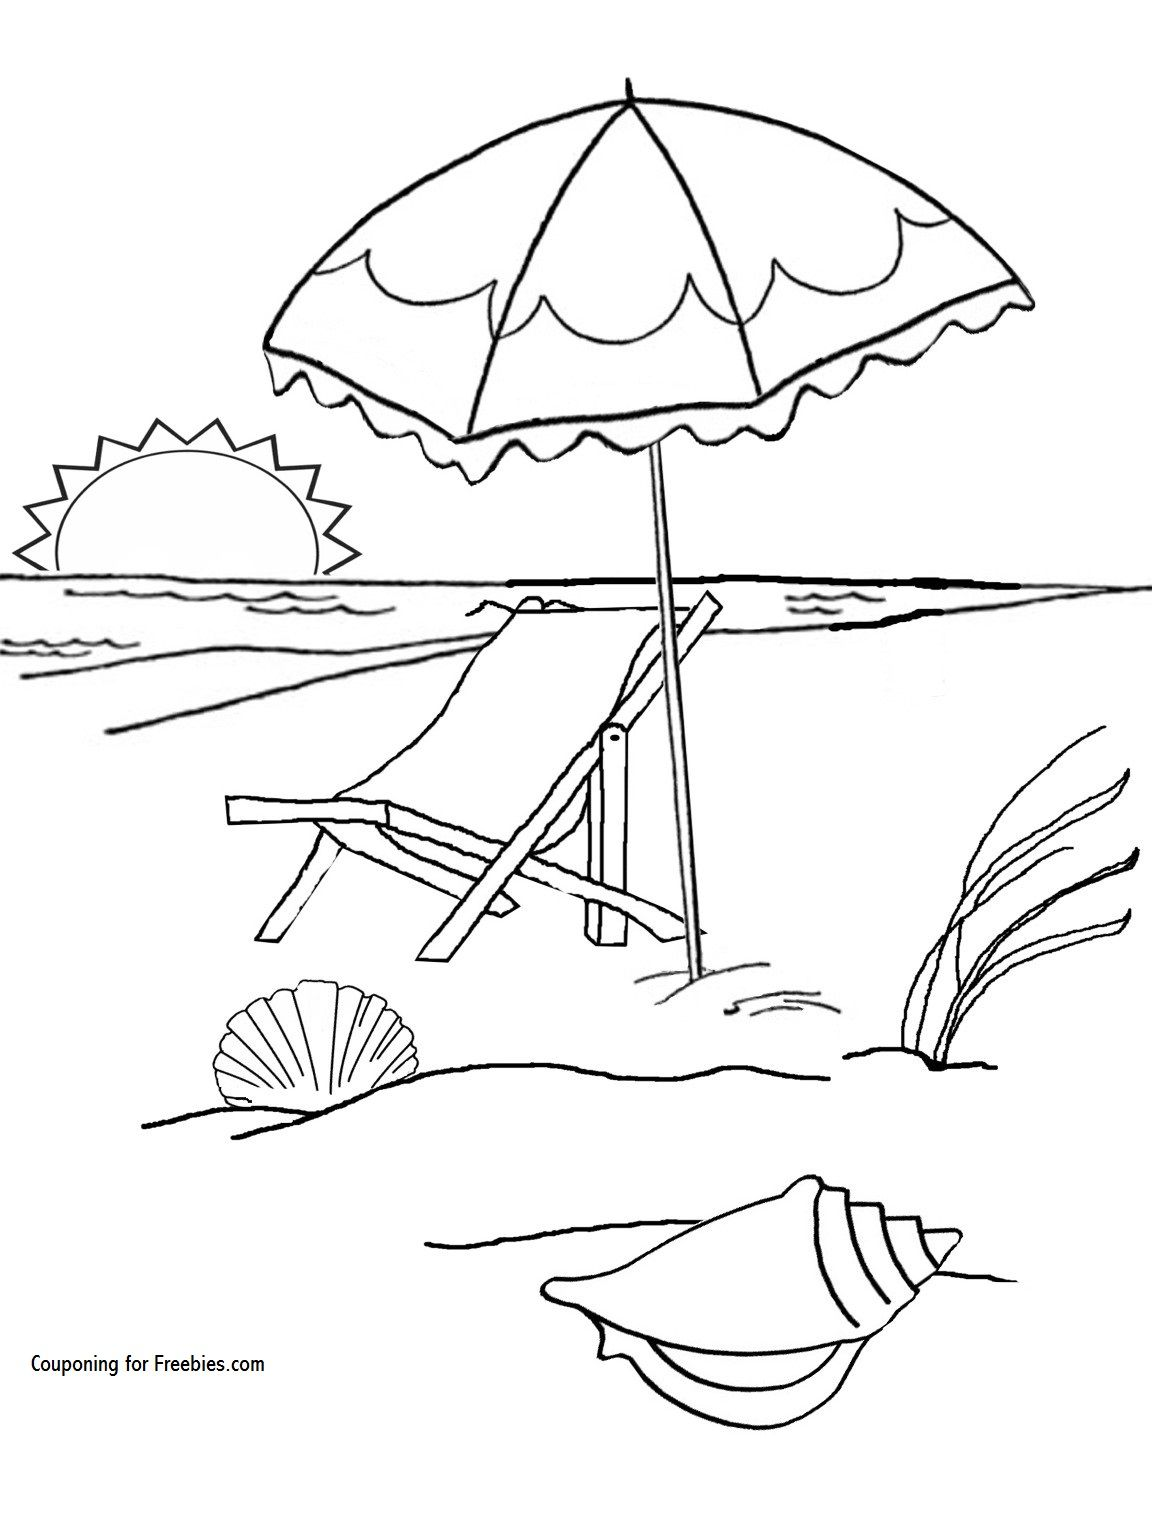 Summer clothes coloring pages - Free Summer At The Beach Coloring Page Http Couponingforfreebies Com